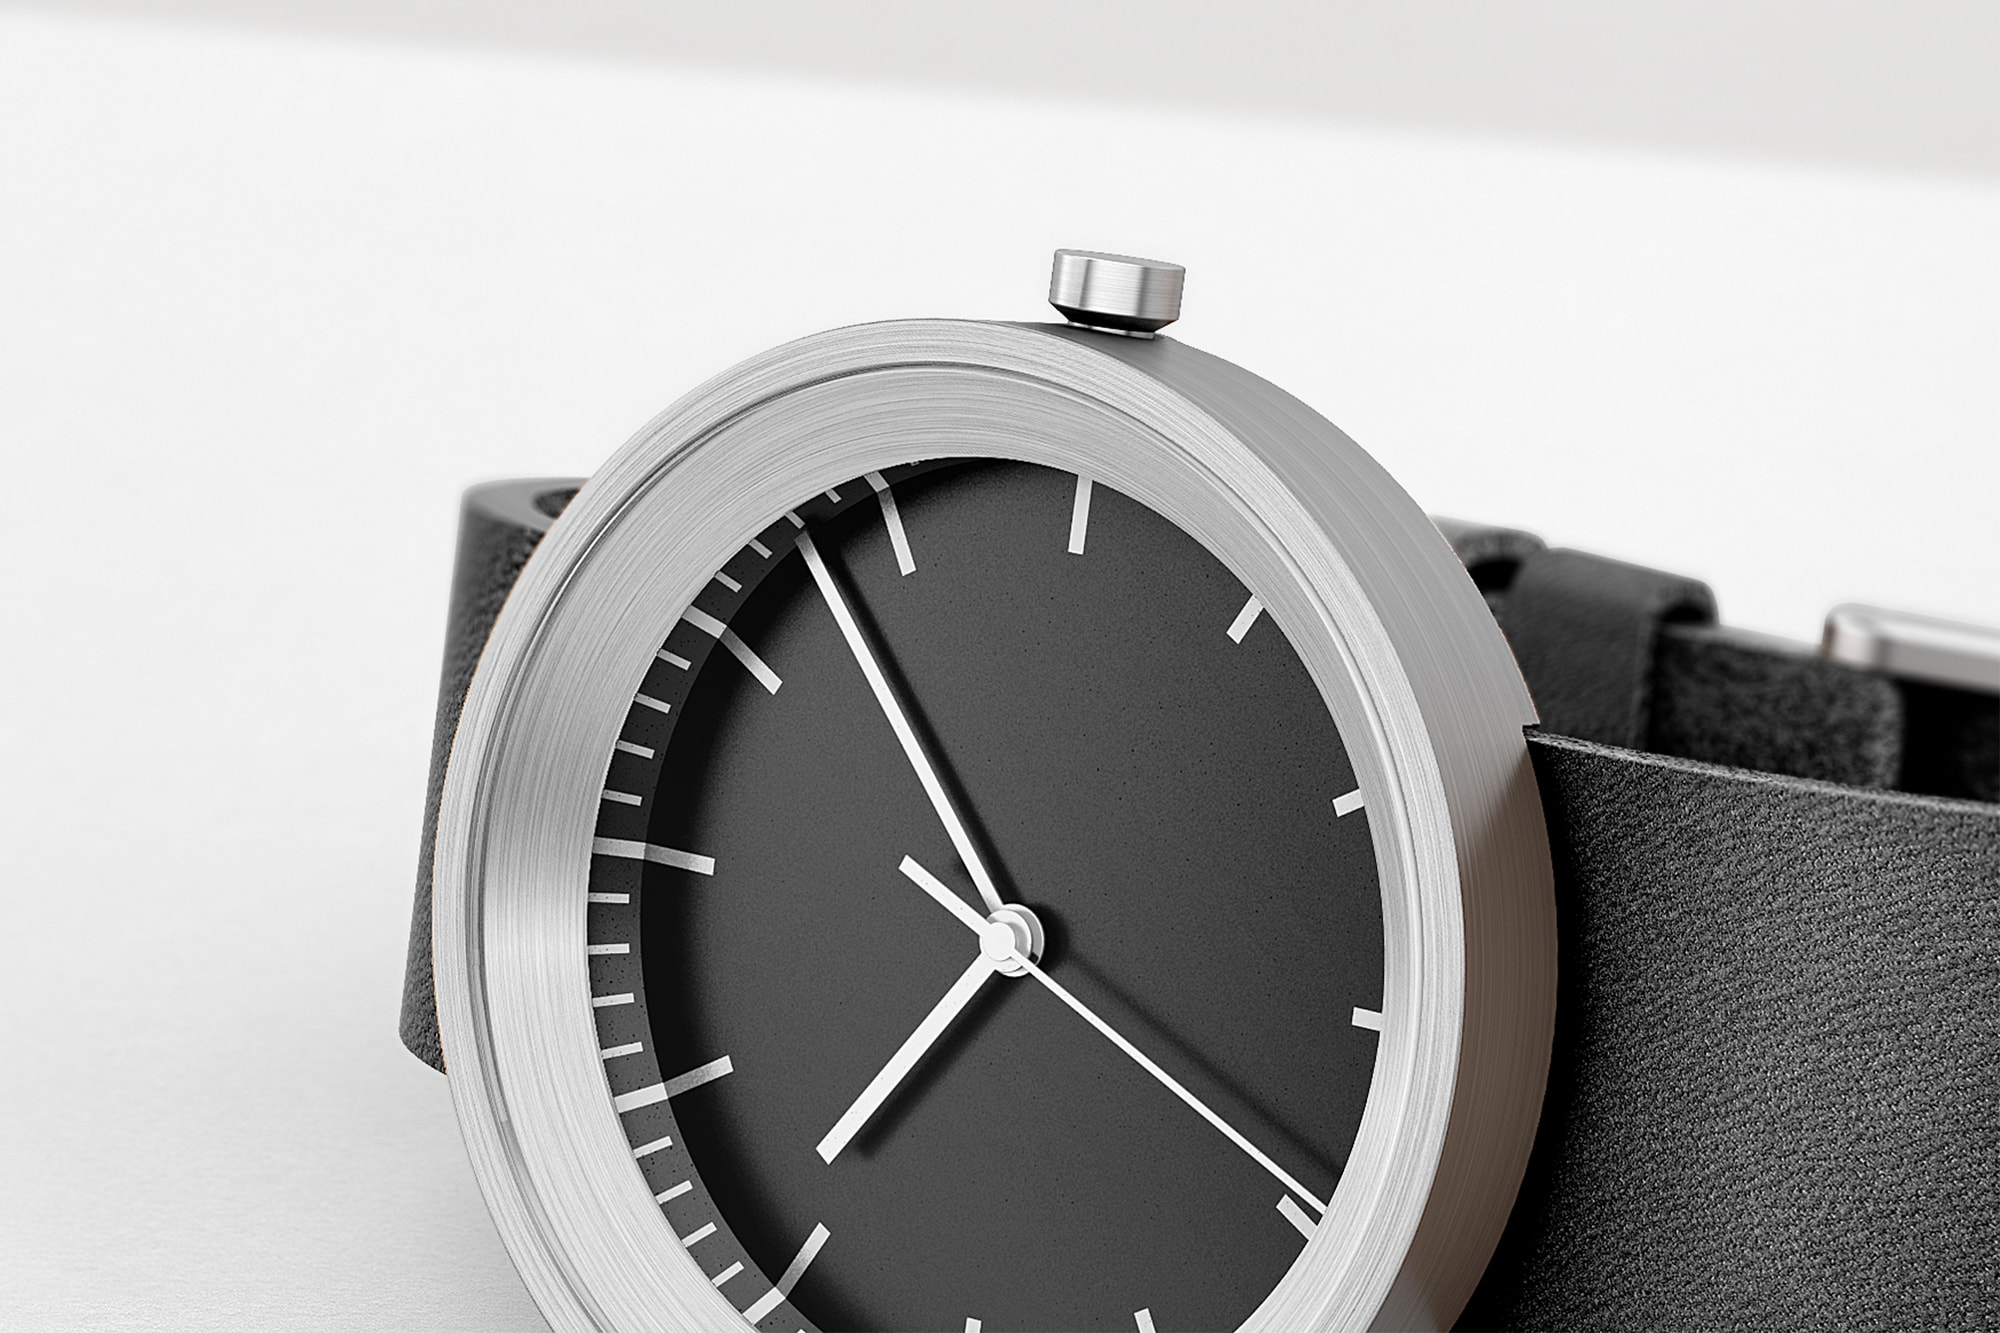 Close up of Hide watch with black strap and silver face